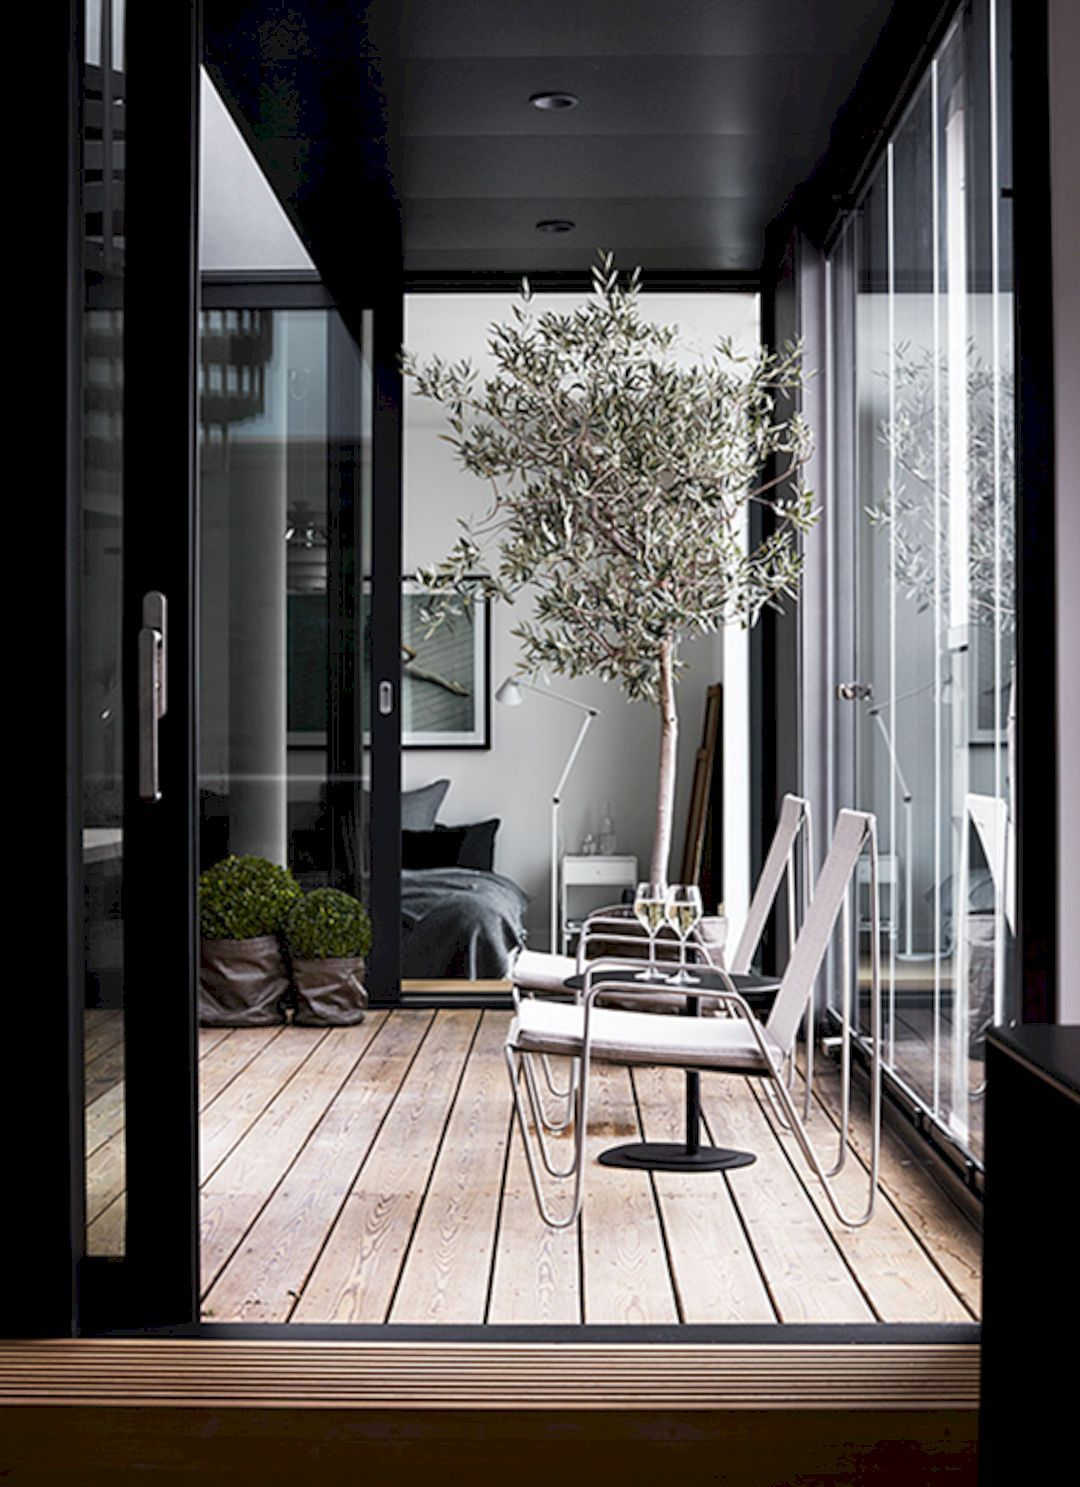 The Top 21 Absolute Best Home Decor Blogs to Follow in 21 ...